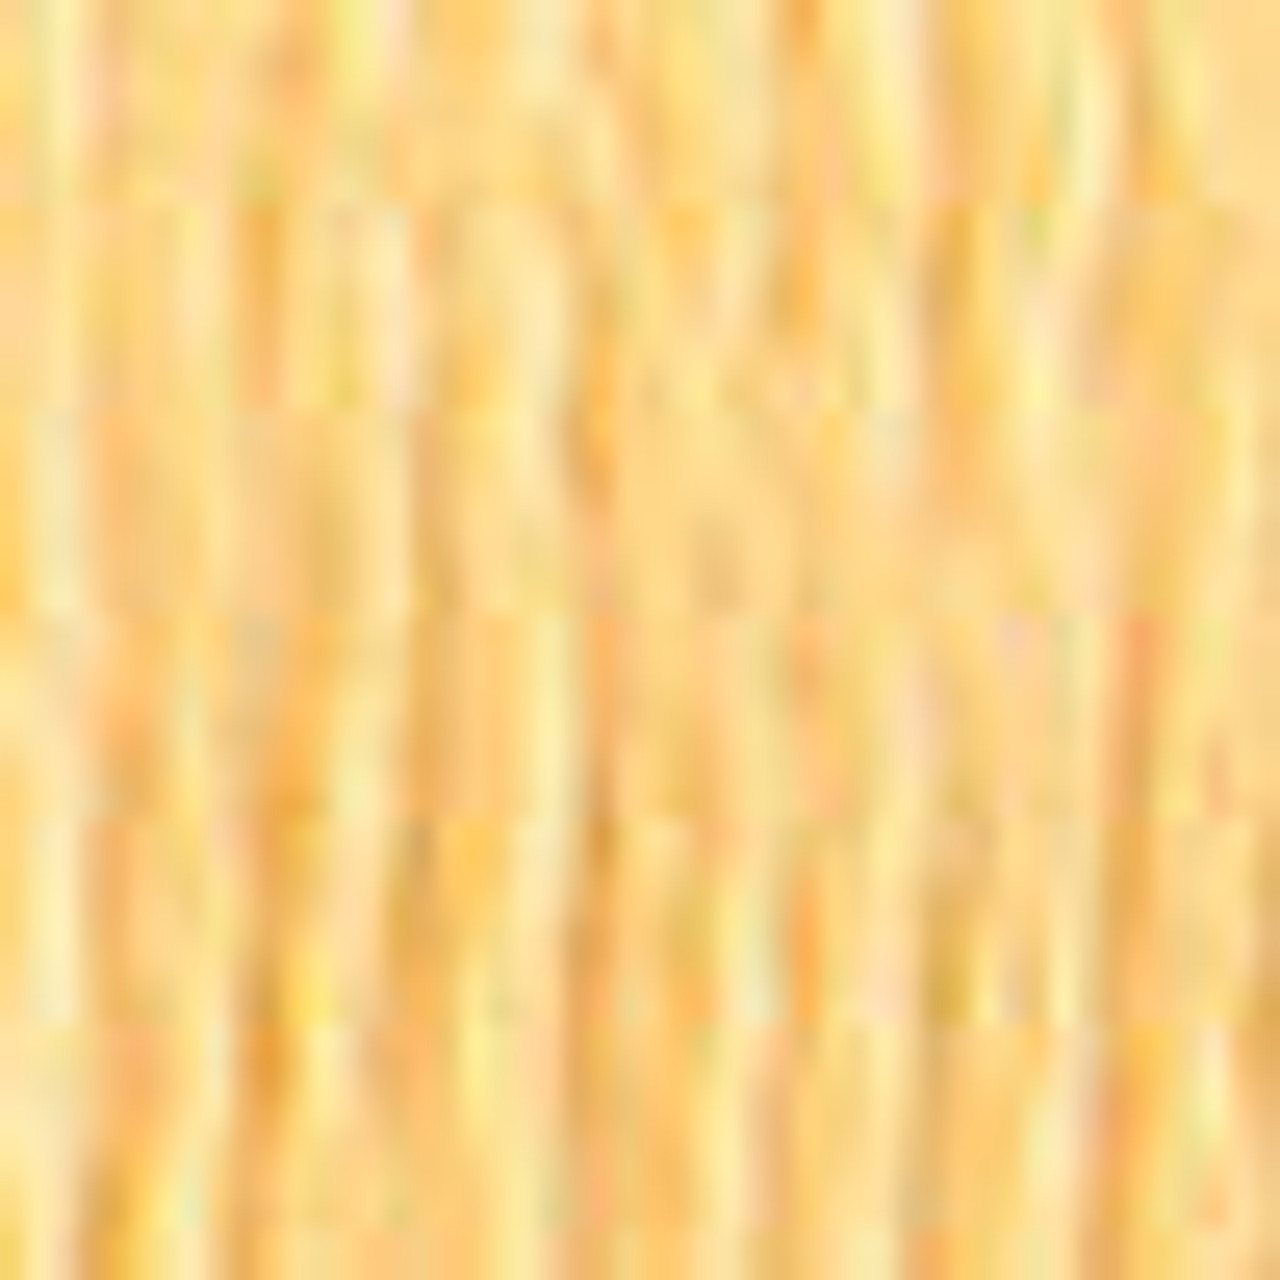 DMC # 3855 Light Autumn Gold Floss / Thread